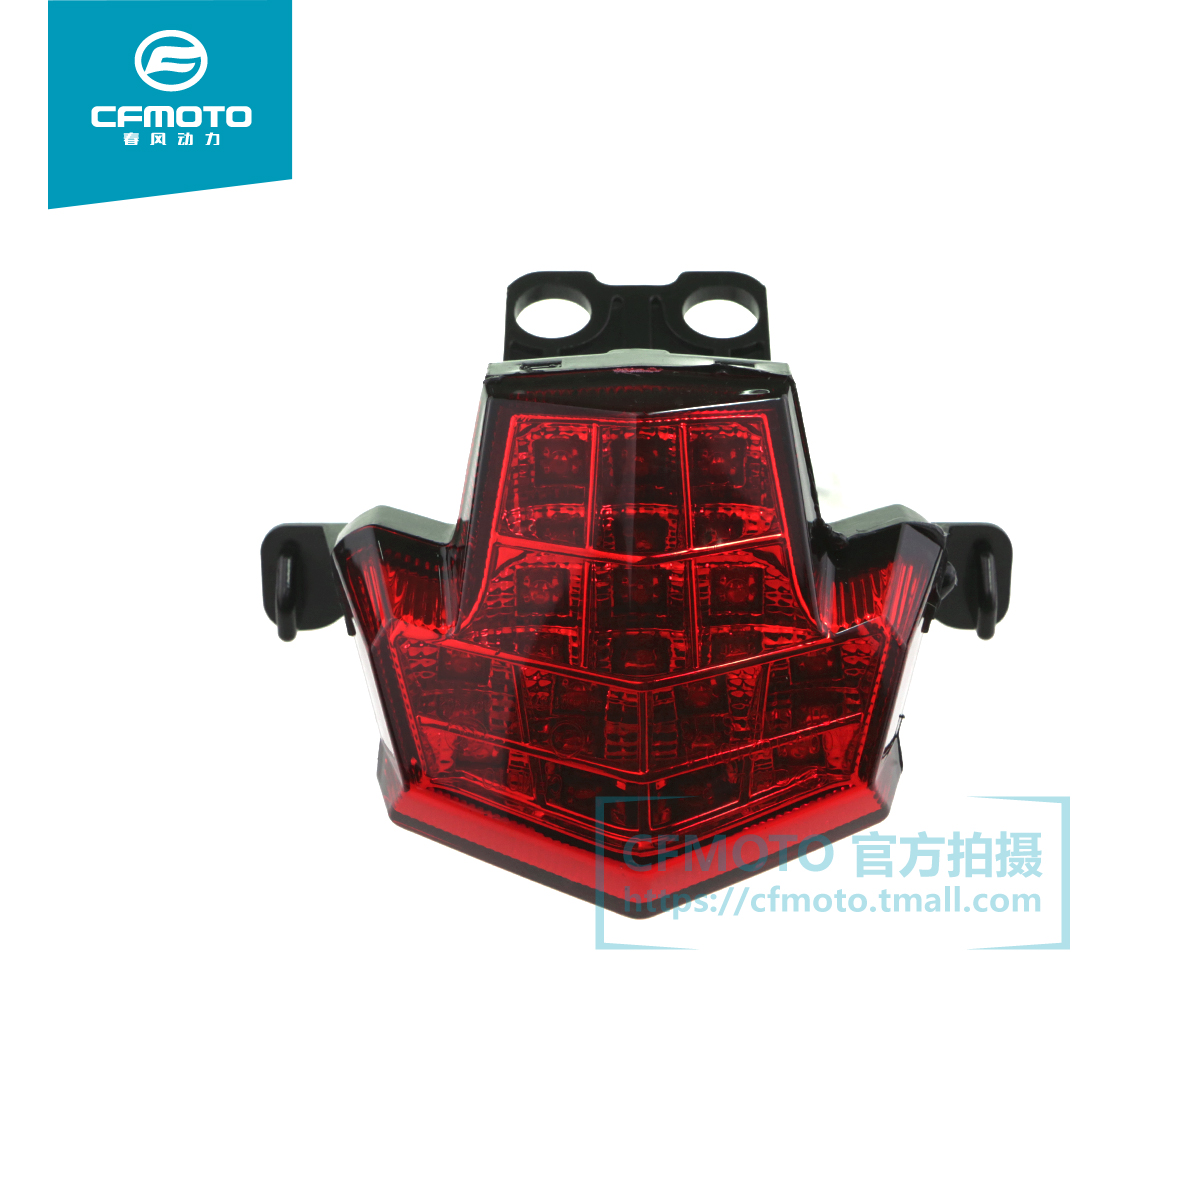 Cfmoto spring cf650 power/cf650nk motorcycle accessories taillight